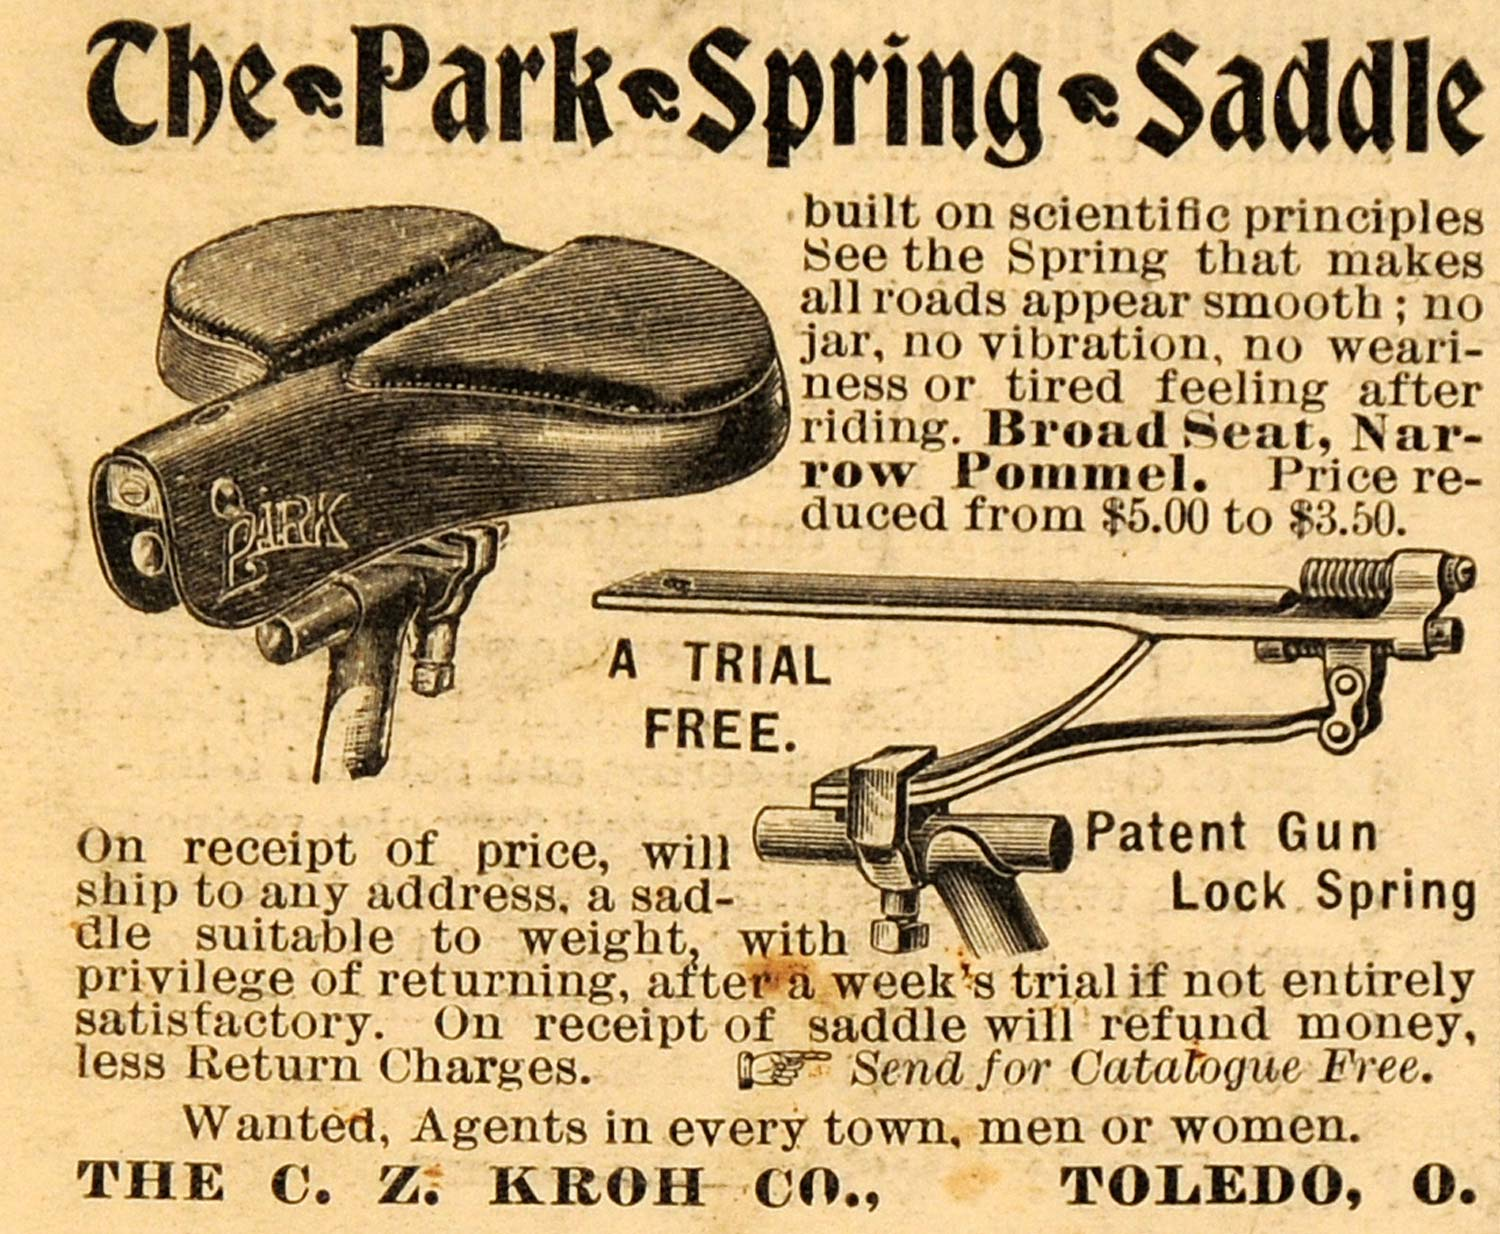 1898 Ad C Z Kroh Co Park Spring Saddle Bicycle Parts - ORIGINAL ADVERTISING SCA2